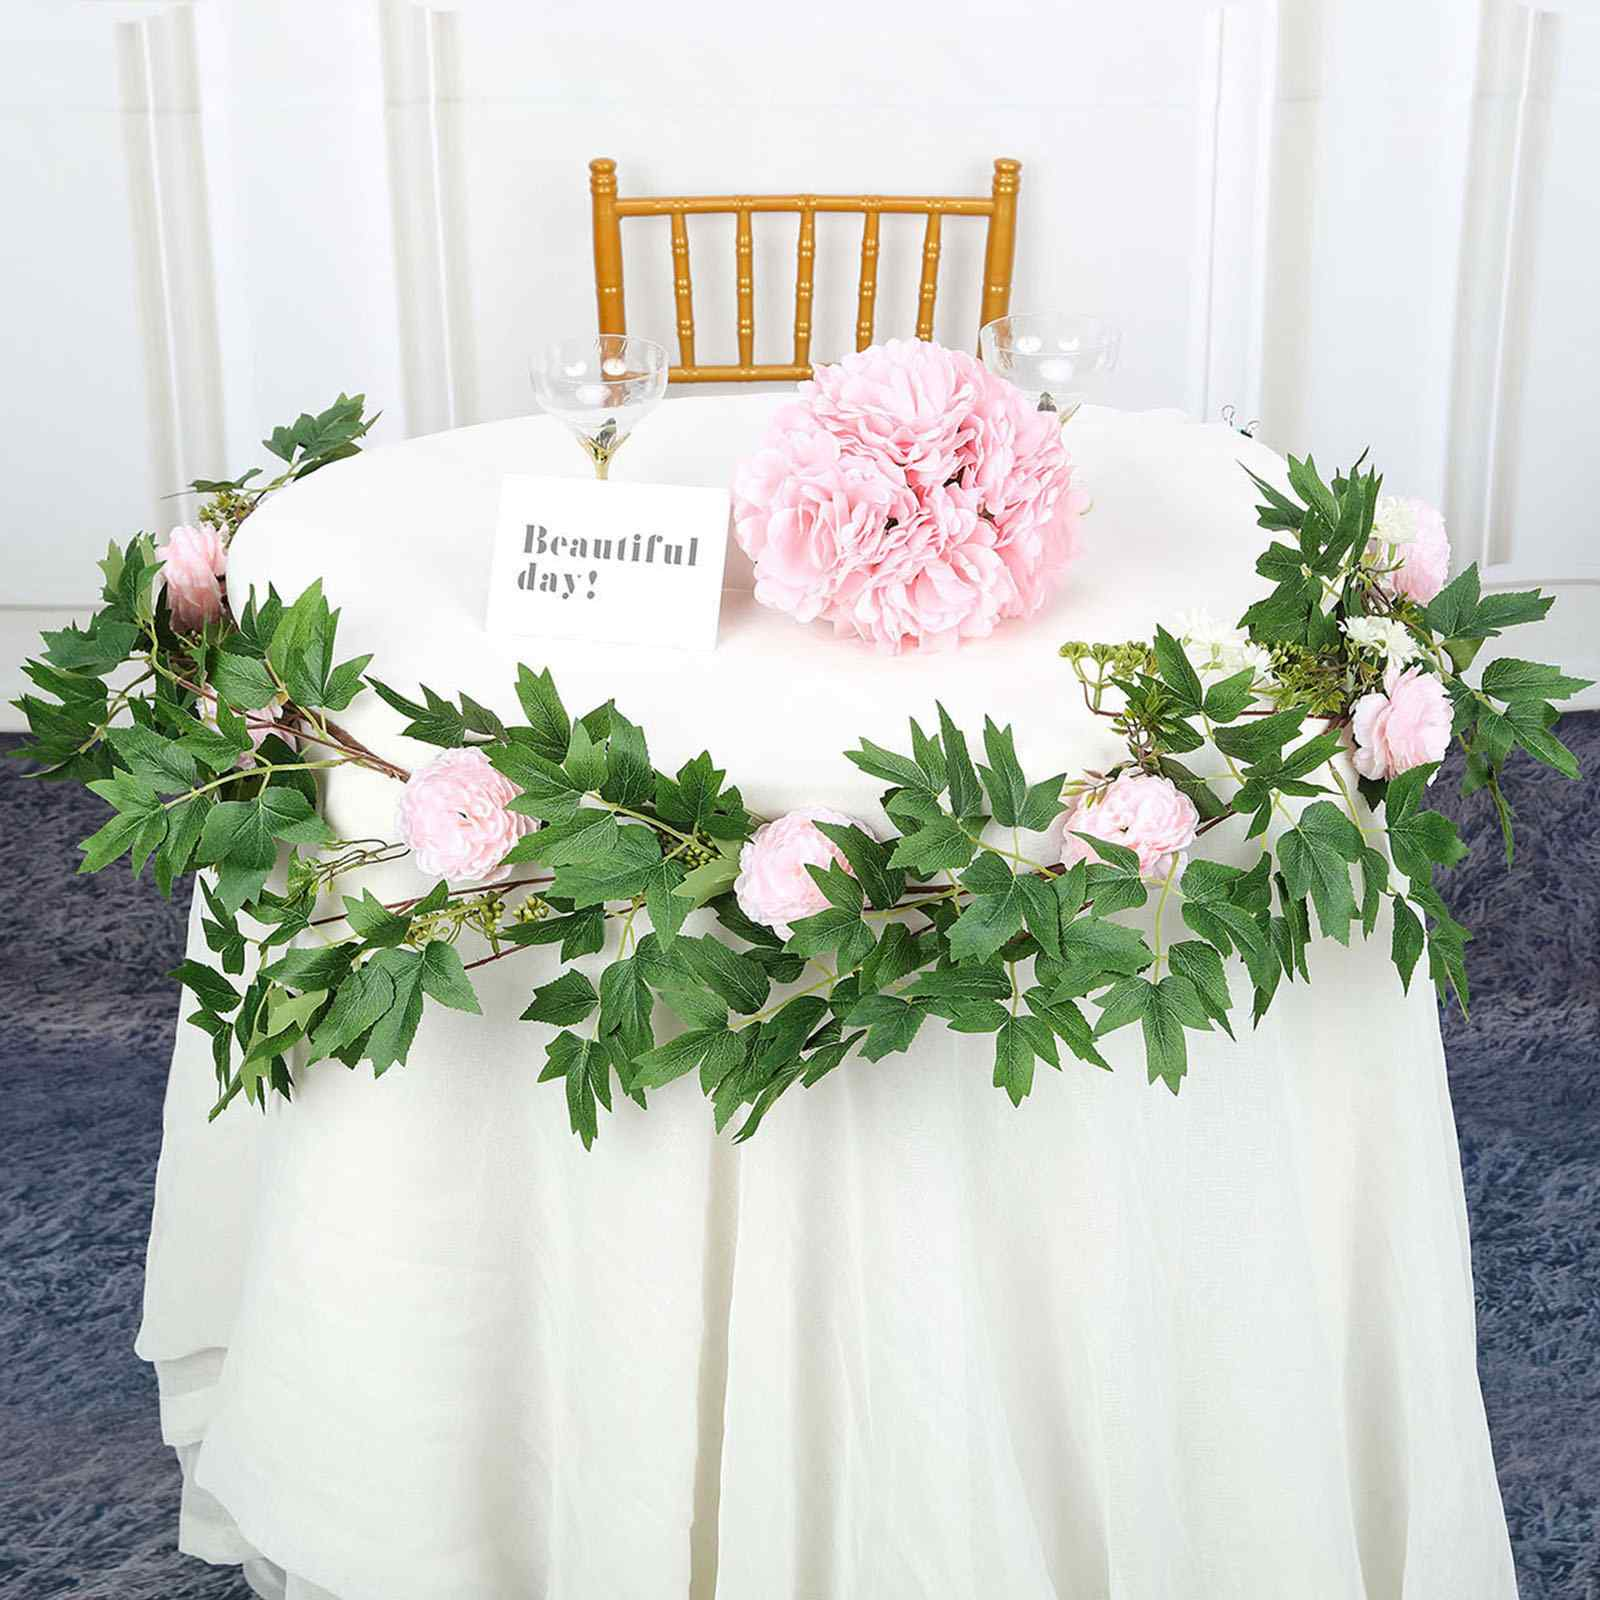 BLUSH 6 ft long Silk Peony Flowers Garland with Leaves and Bendable Wire Vines